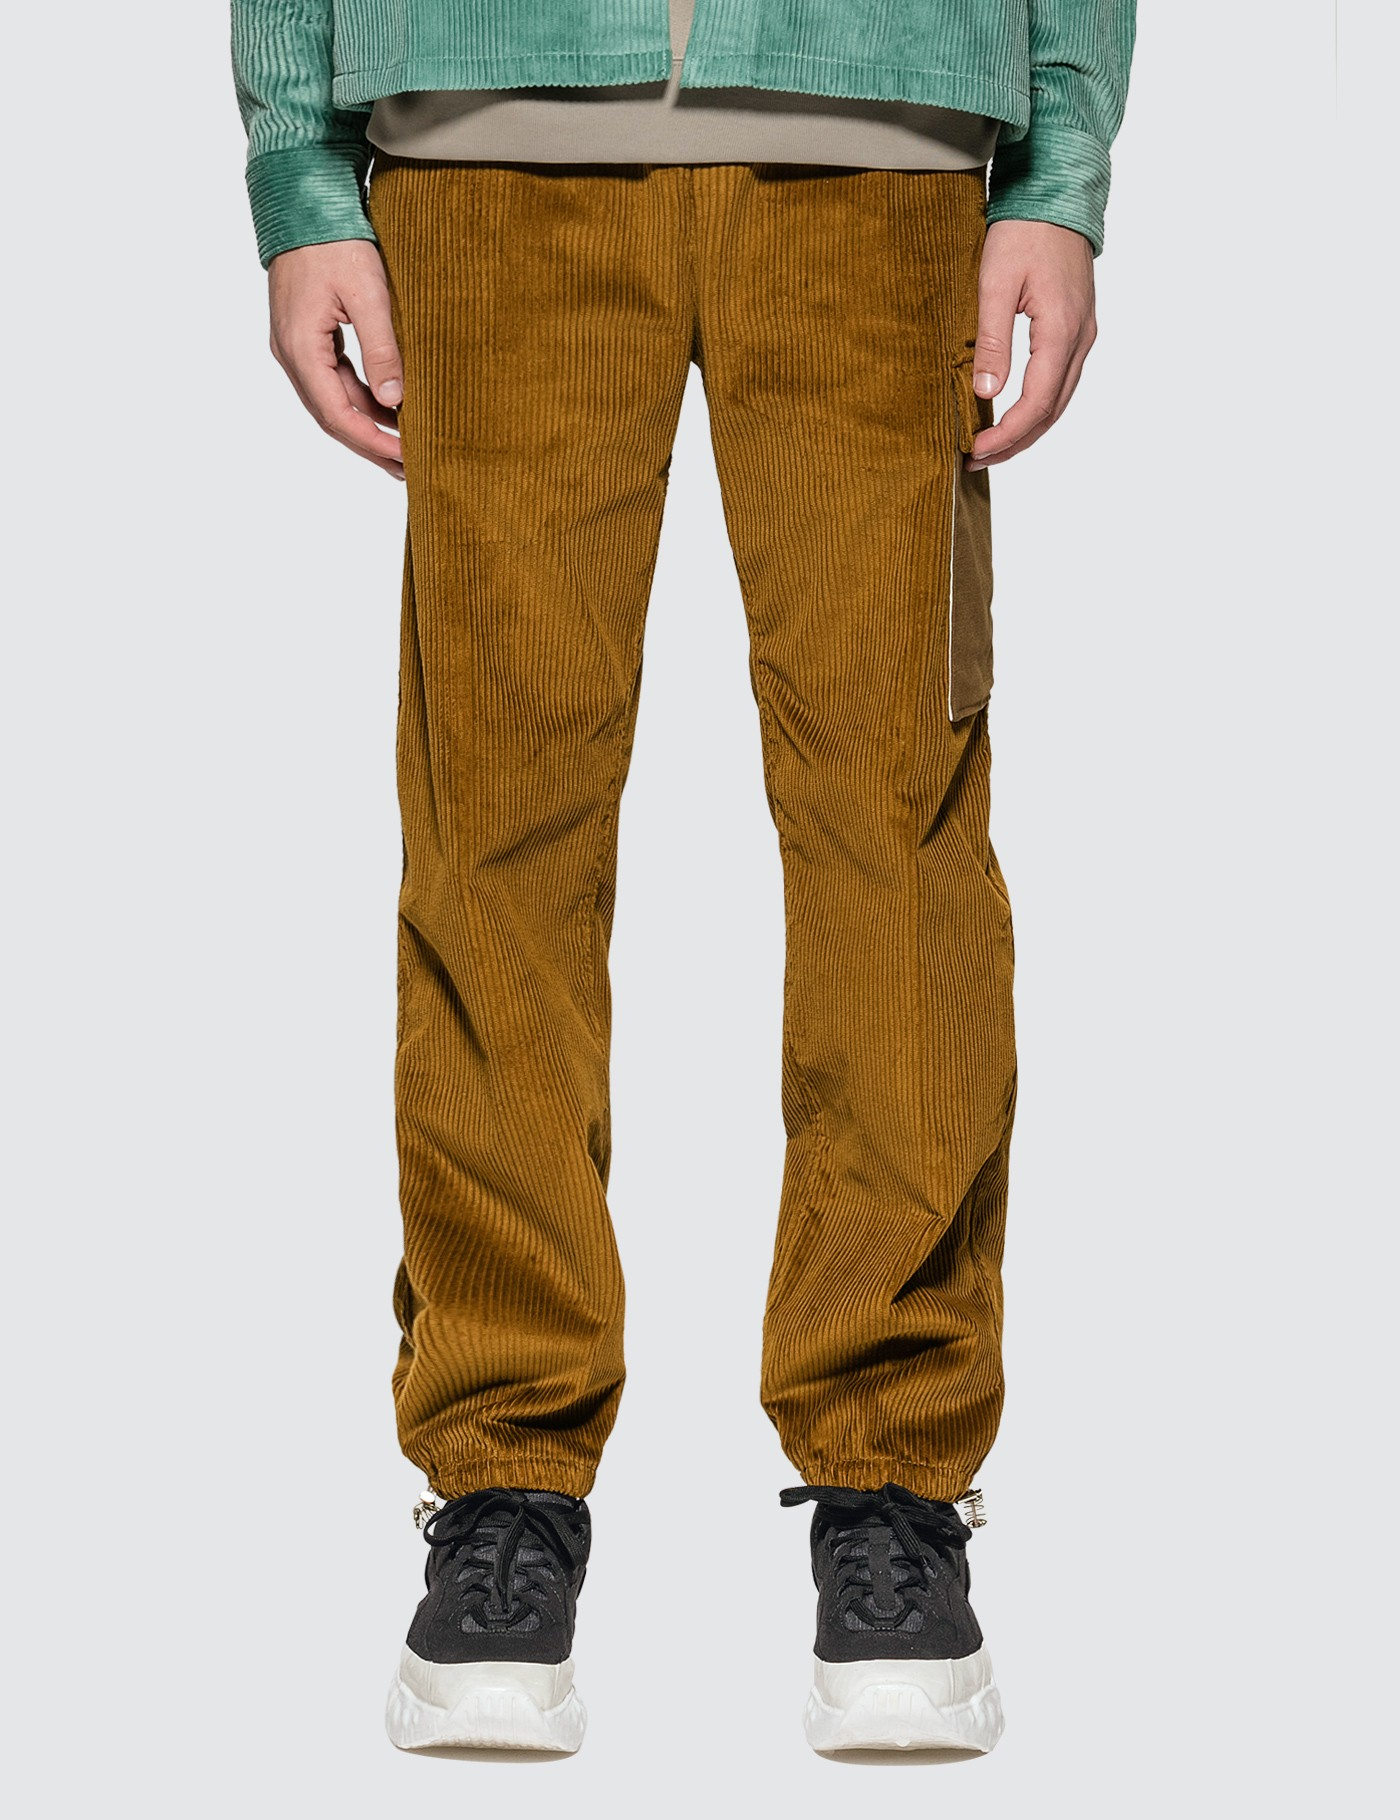 Payden Cord Trousers